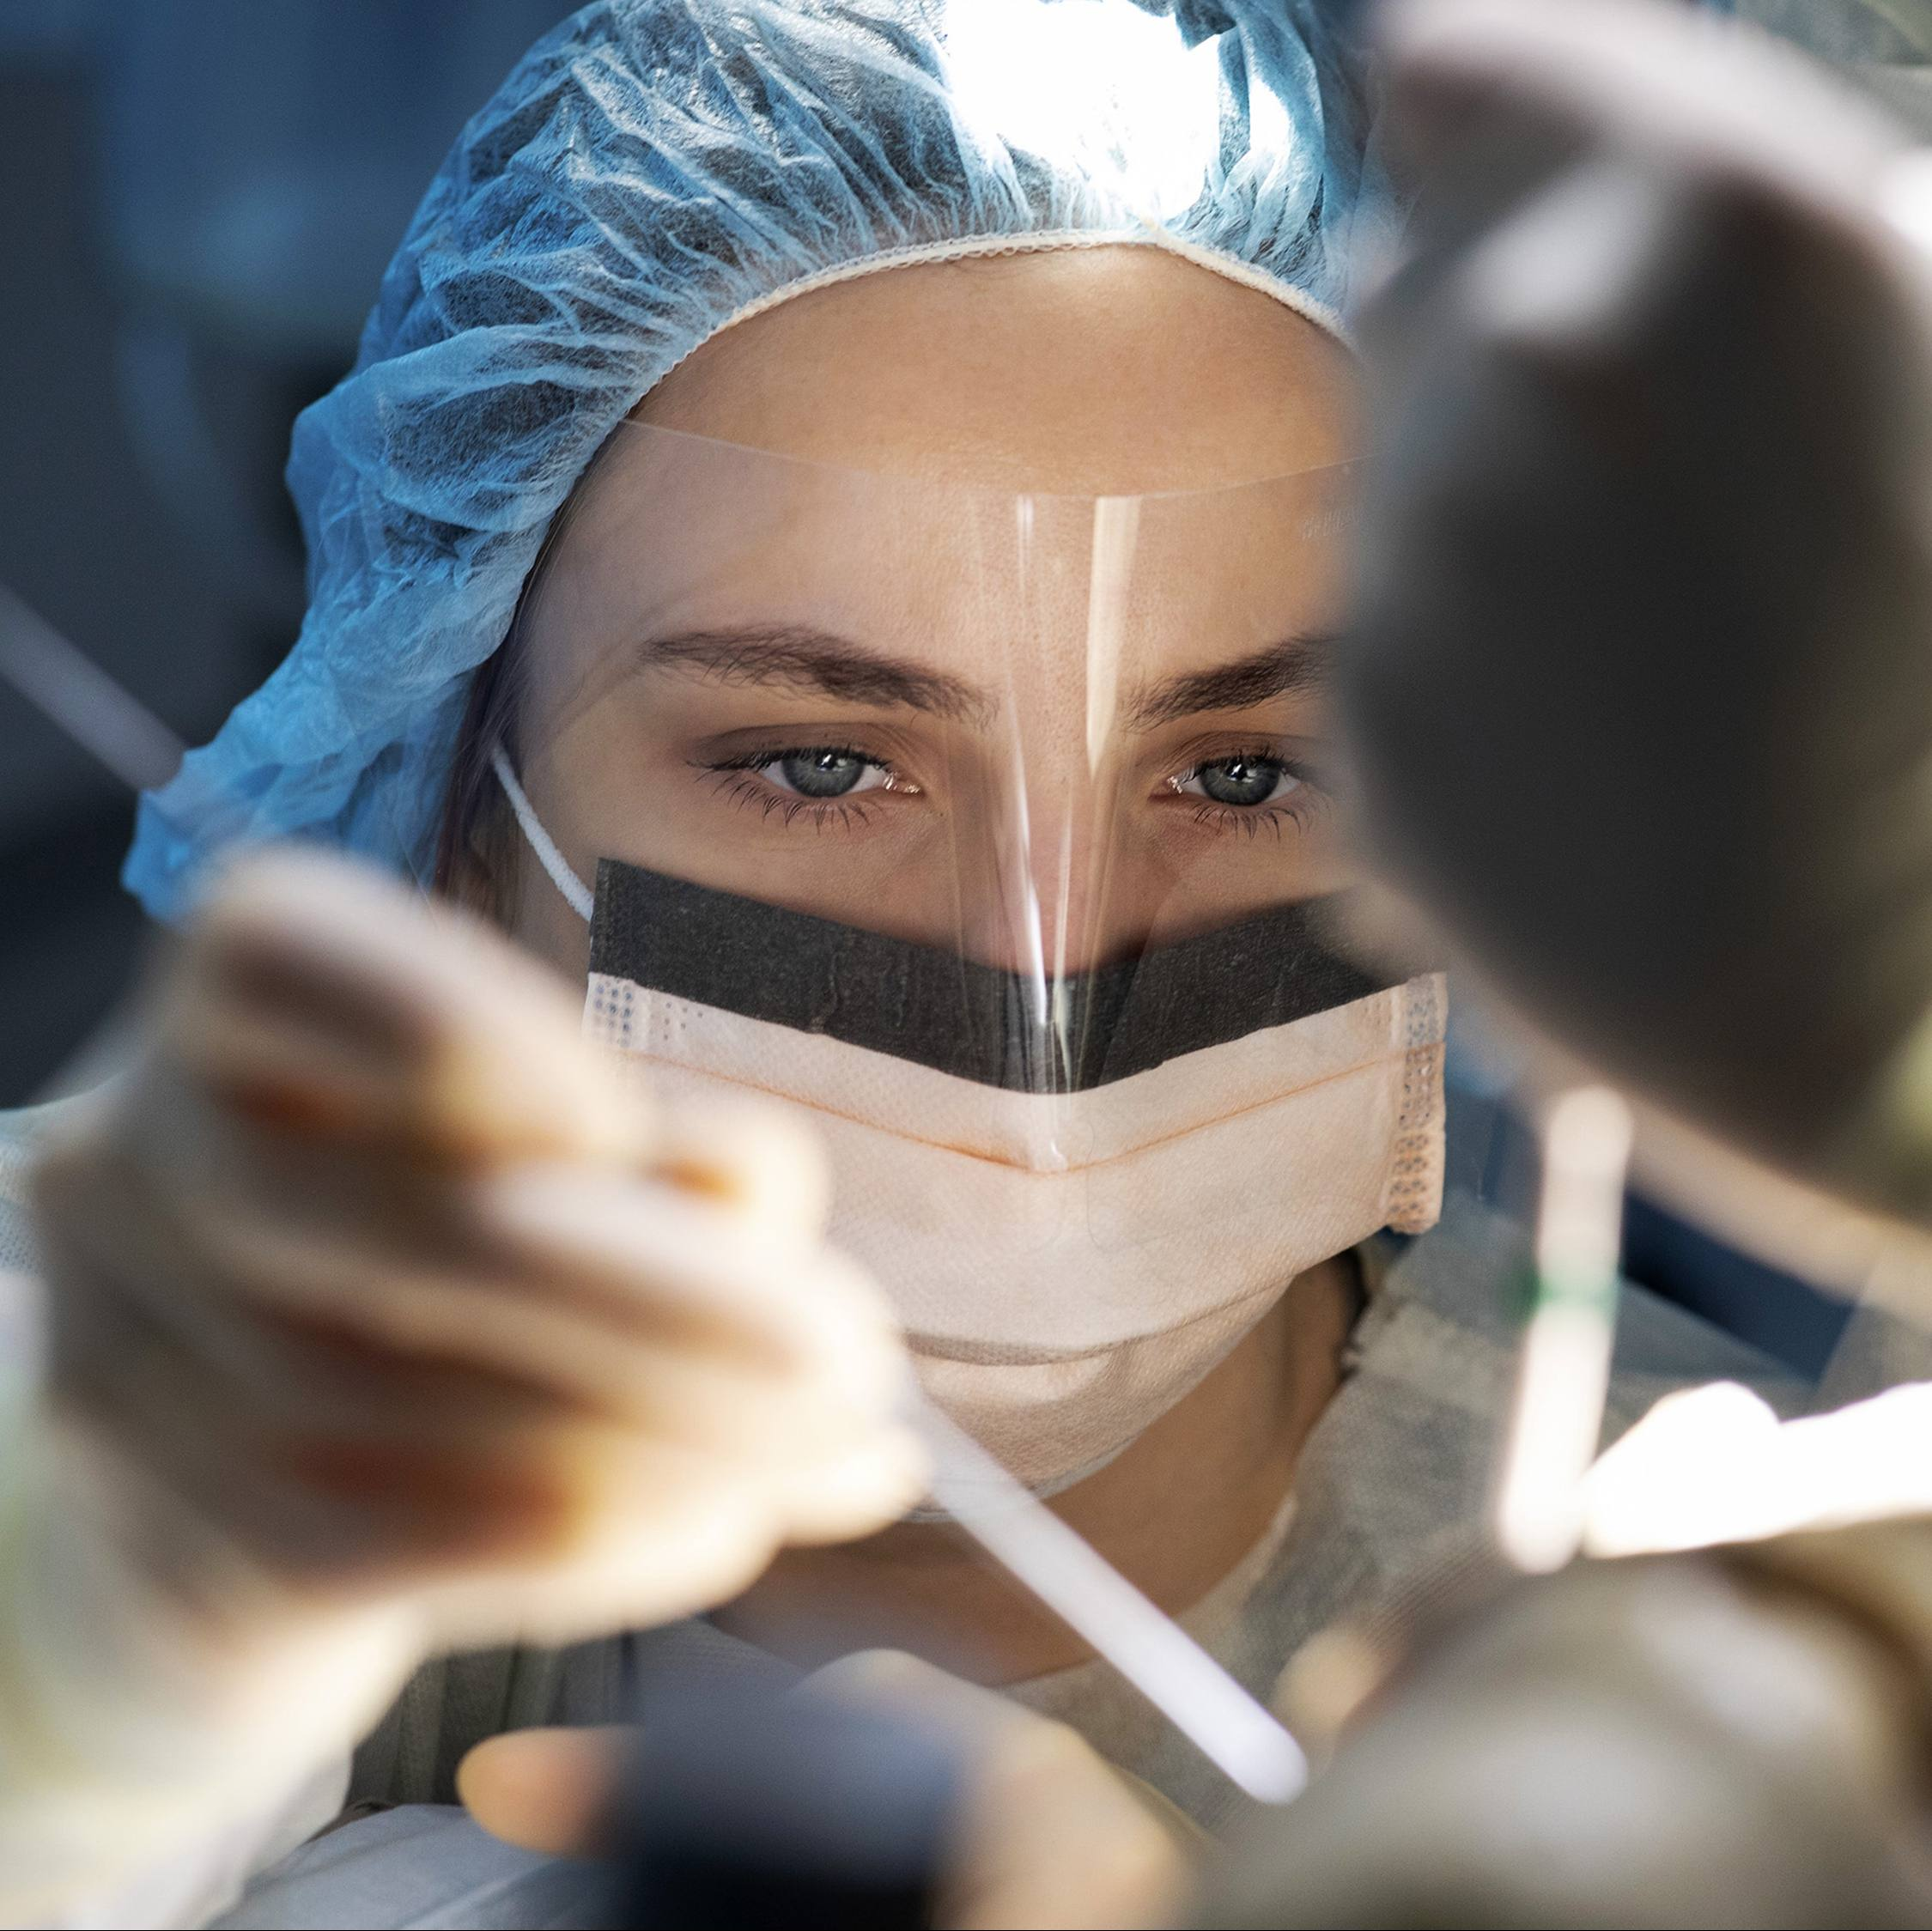 a Mayo Clinic surgeon, a white woman, wearing PPE, including a face shield in the operating room during COVID-19 pandemic